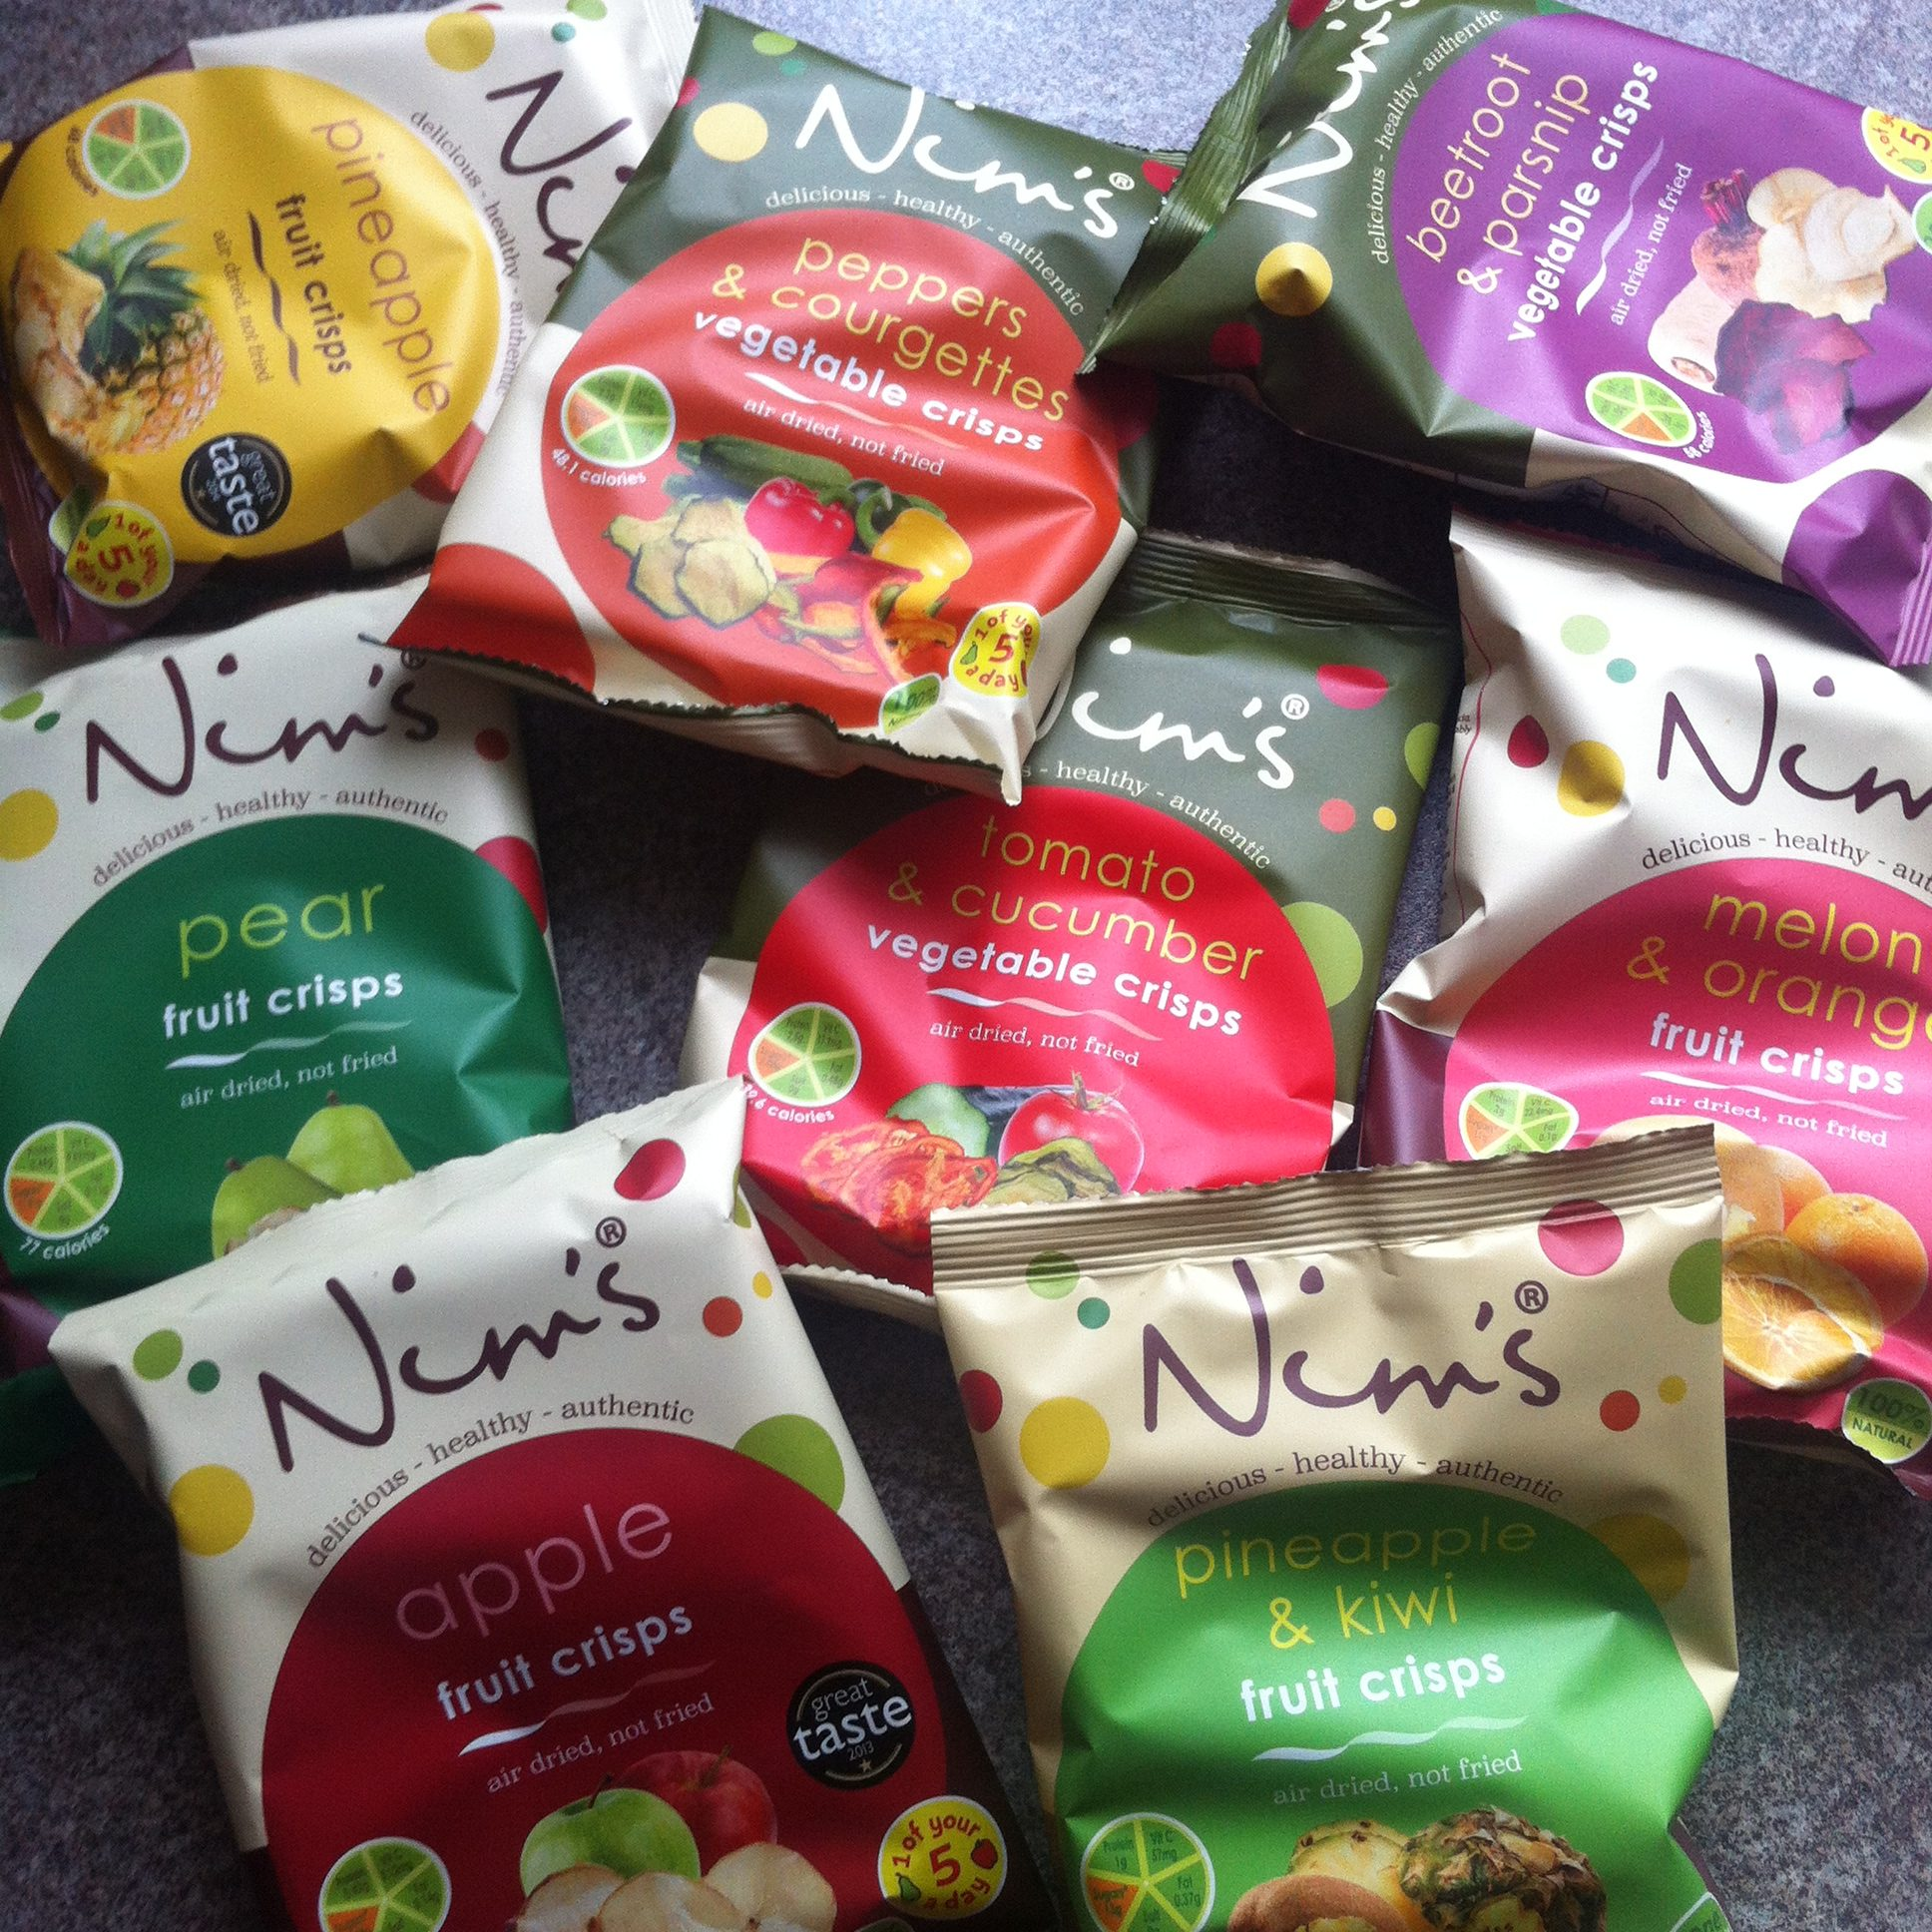 Nim's fruit and vegetable crisps review